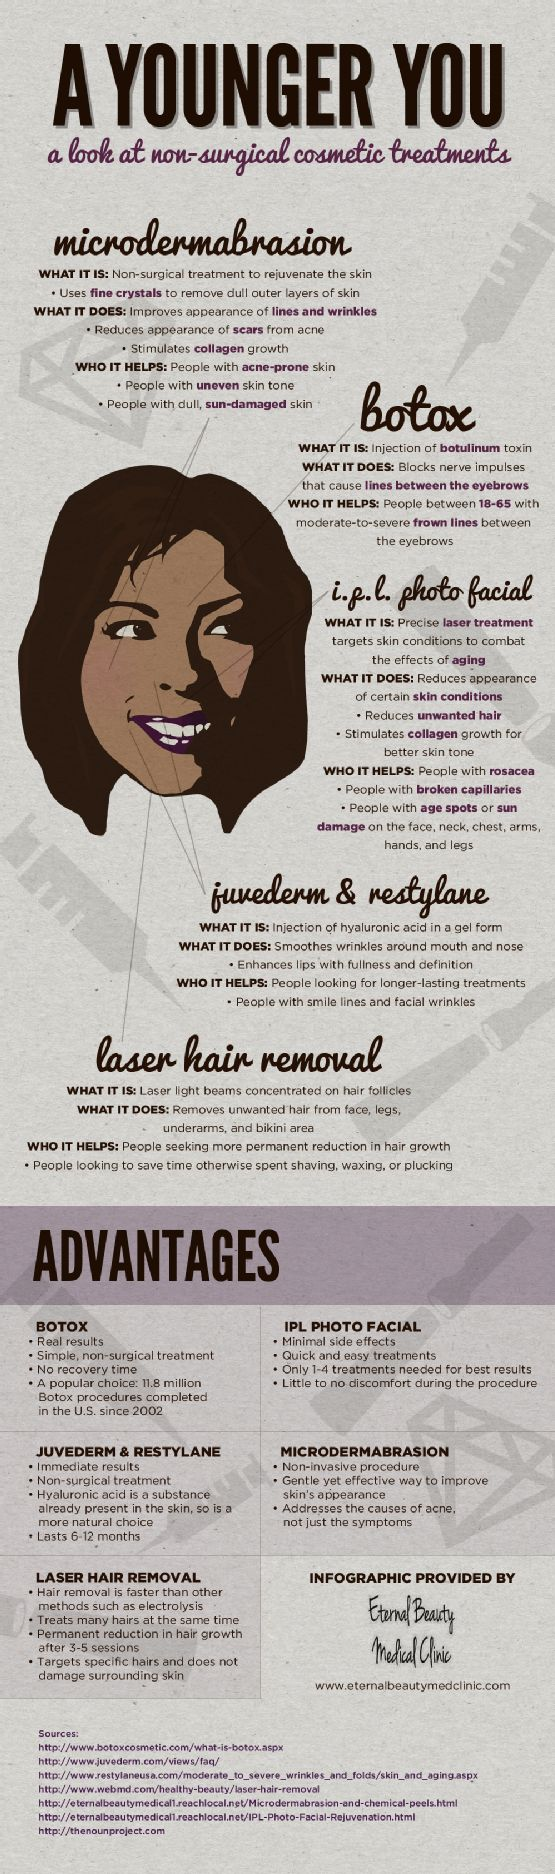 Every week, people spend multiple hours tackling unwanted facial and body hair. Laser hair removal provides a permanent alternative! Read more about what to expect from laser hair removal on this infographic from a San Jose medical clinic. Source: http://